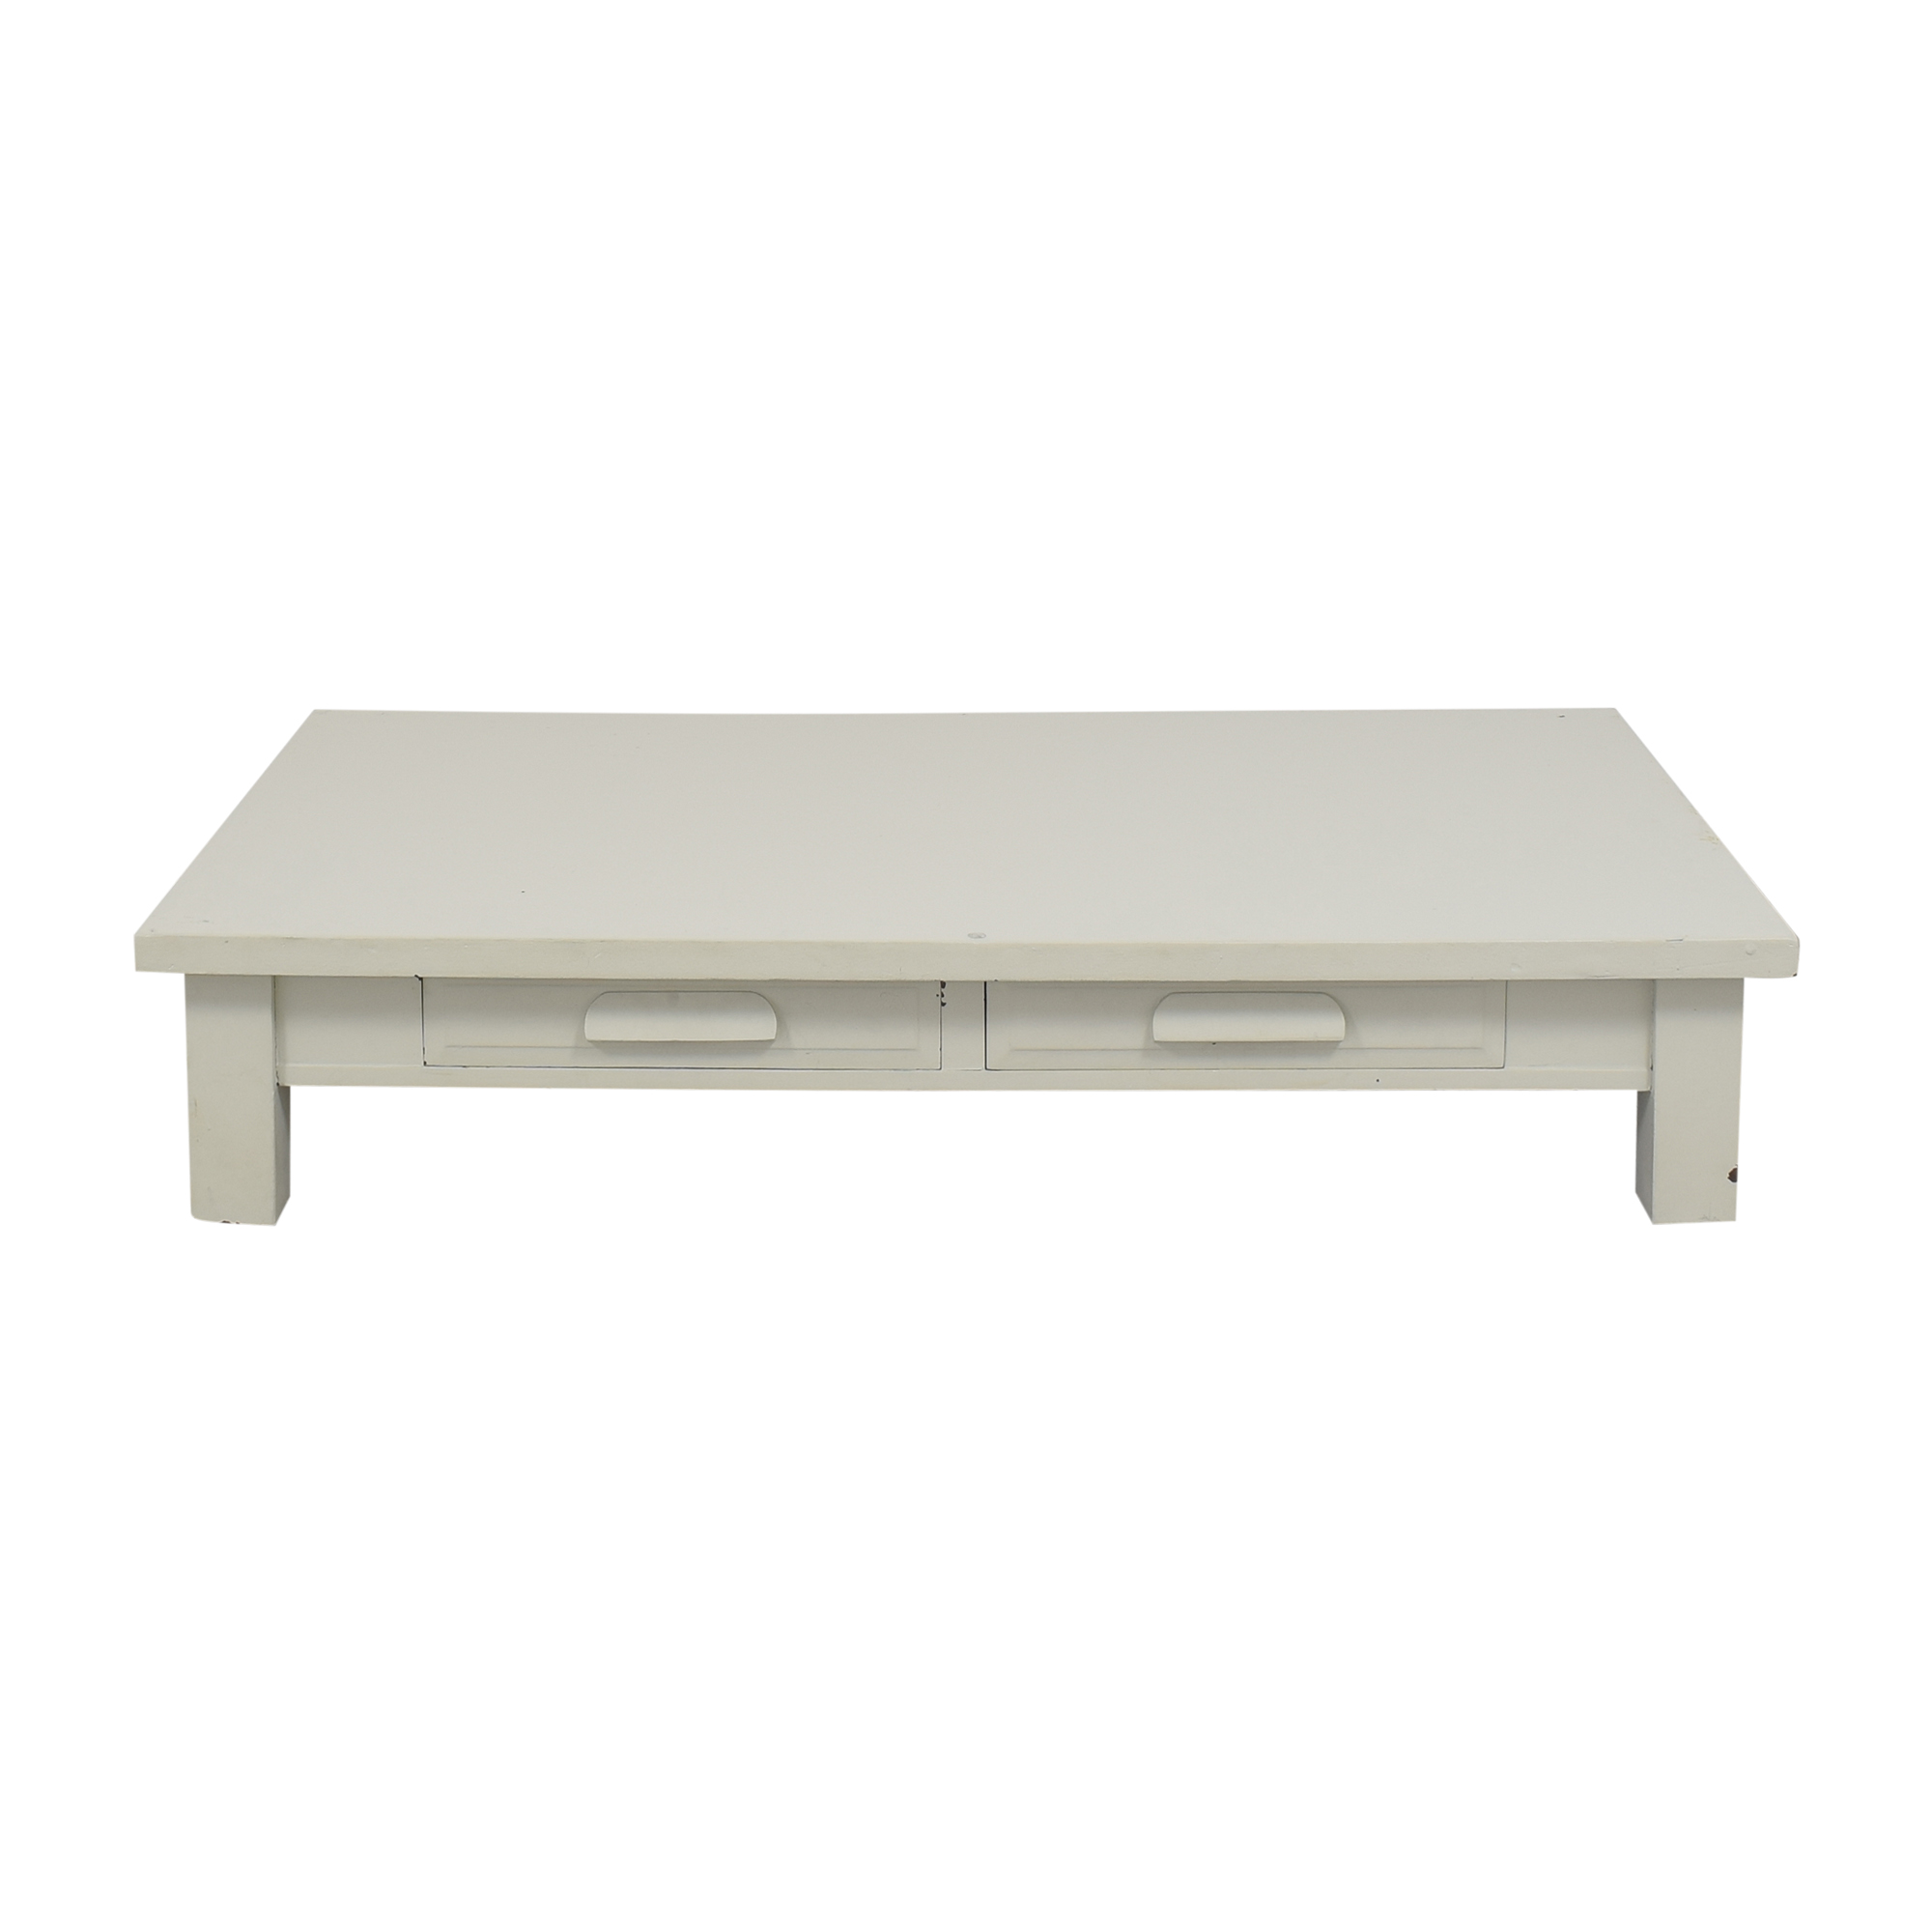 Standard Furniture Coffee Table with Drawers / Coffee Tables